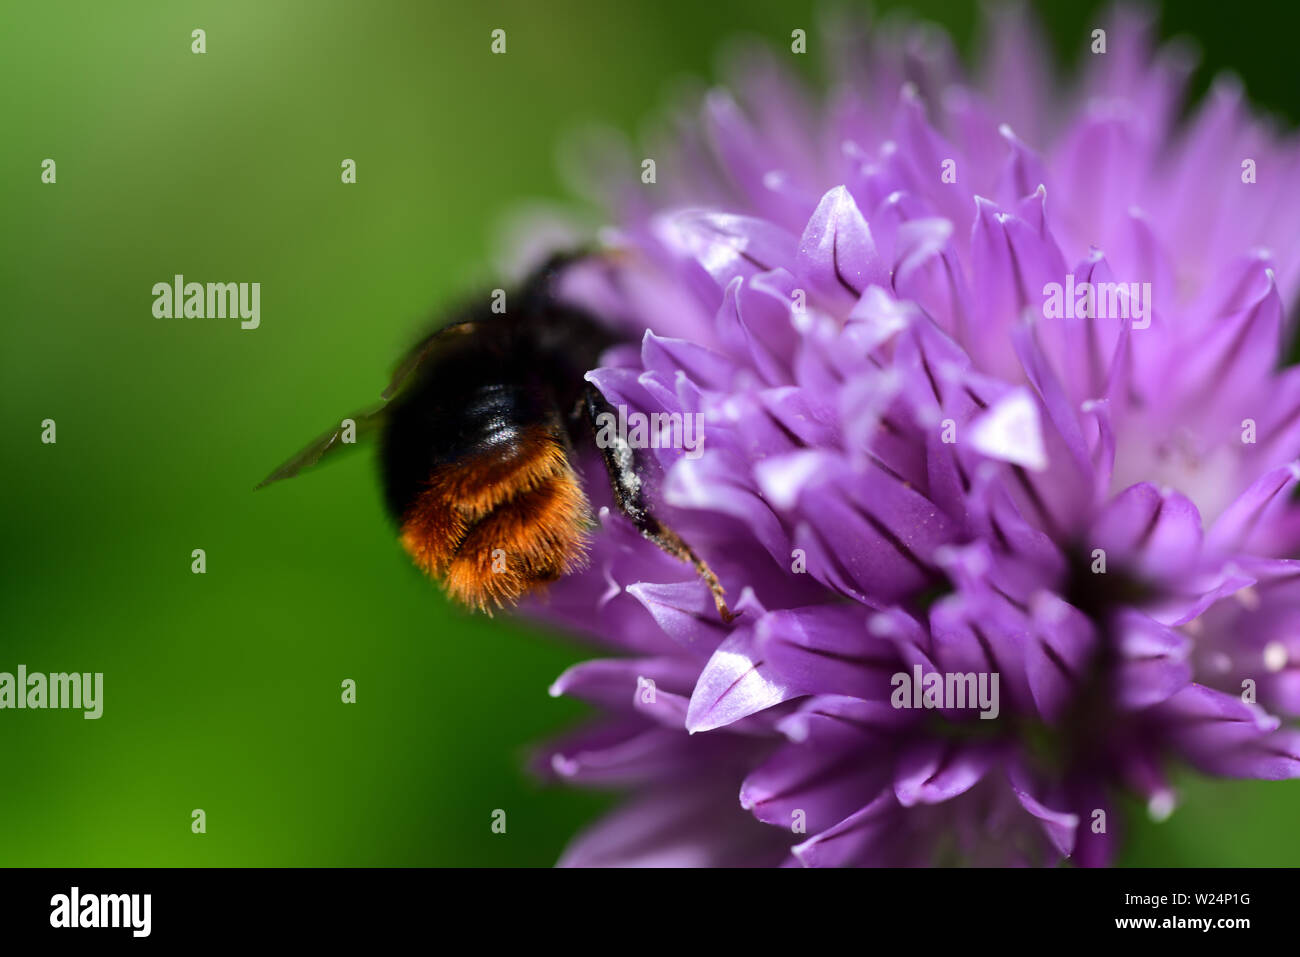 Closeup of a chive blossom with a bee searching nectar there - Stock Image